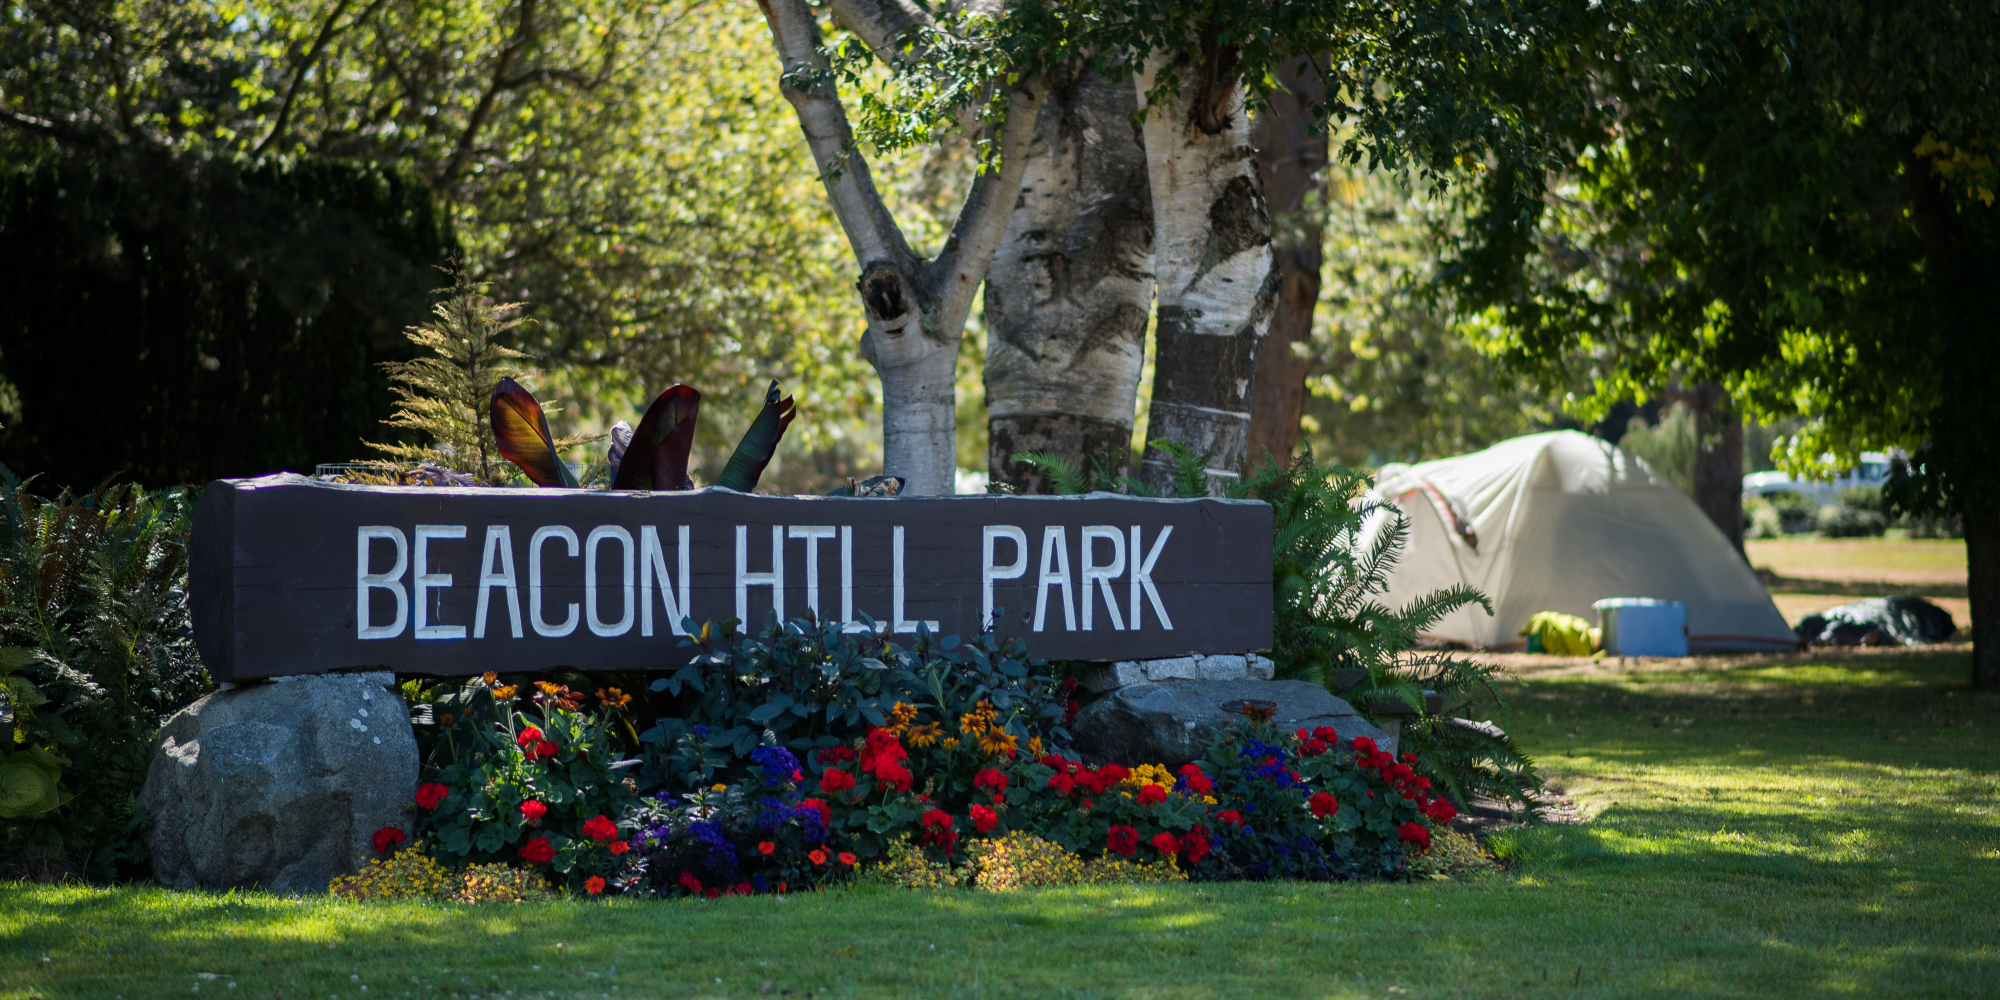 Why tent encampments, like music festivals, may not be legal at Beacon Hill Park